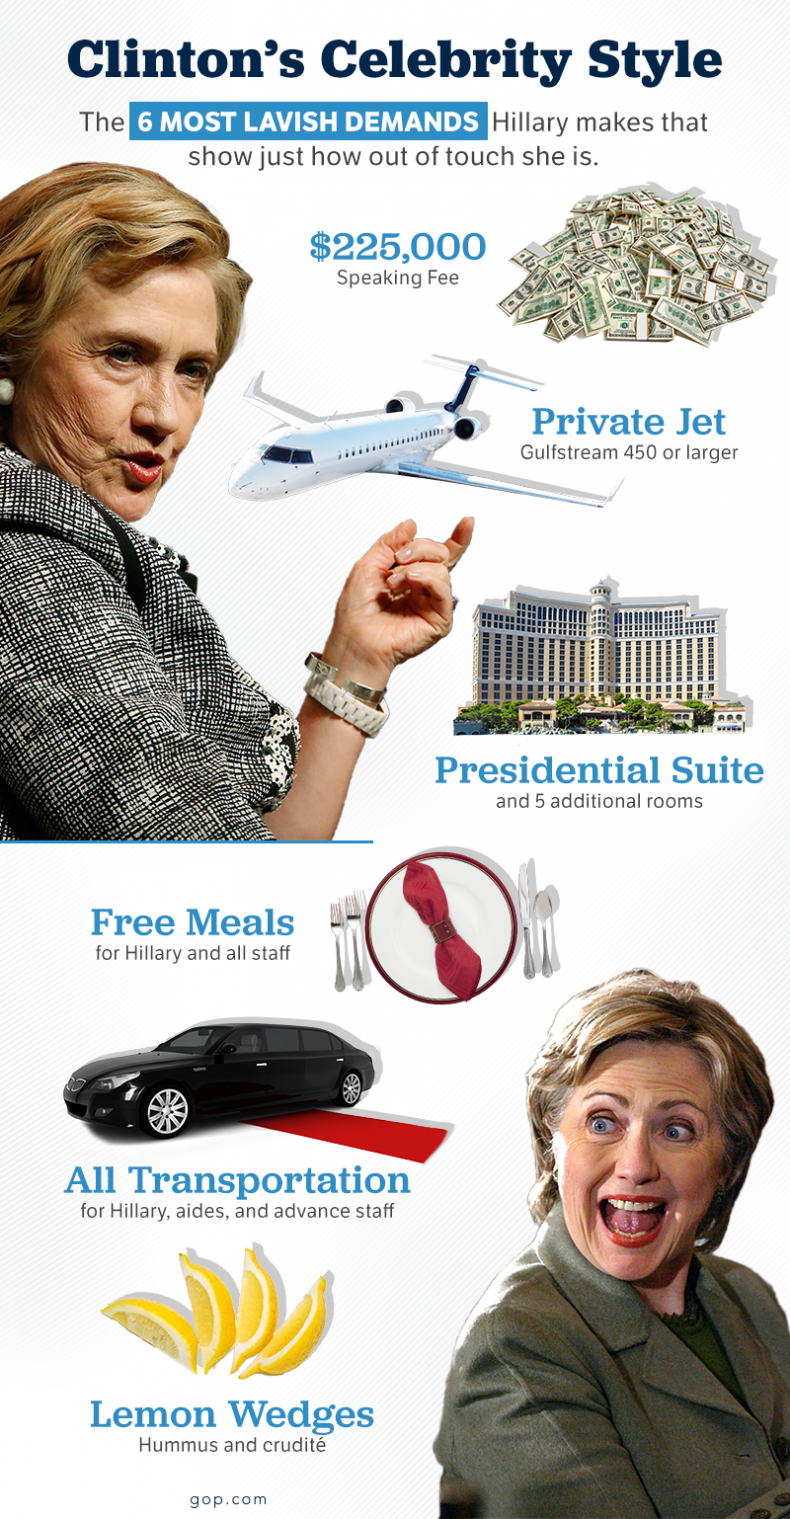 1-8-15 RNC infographic 2